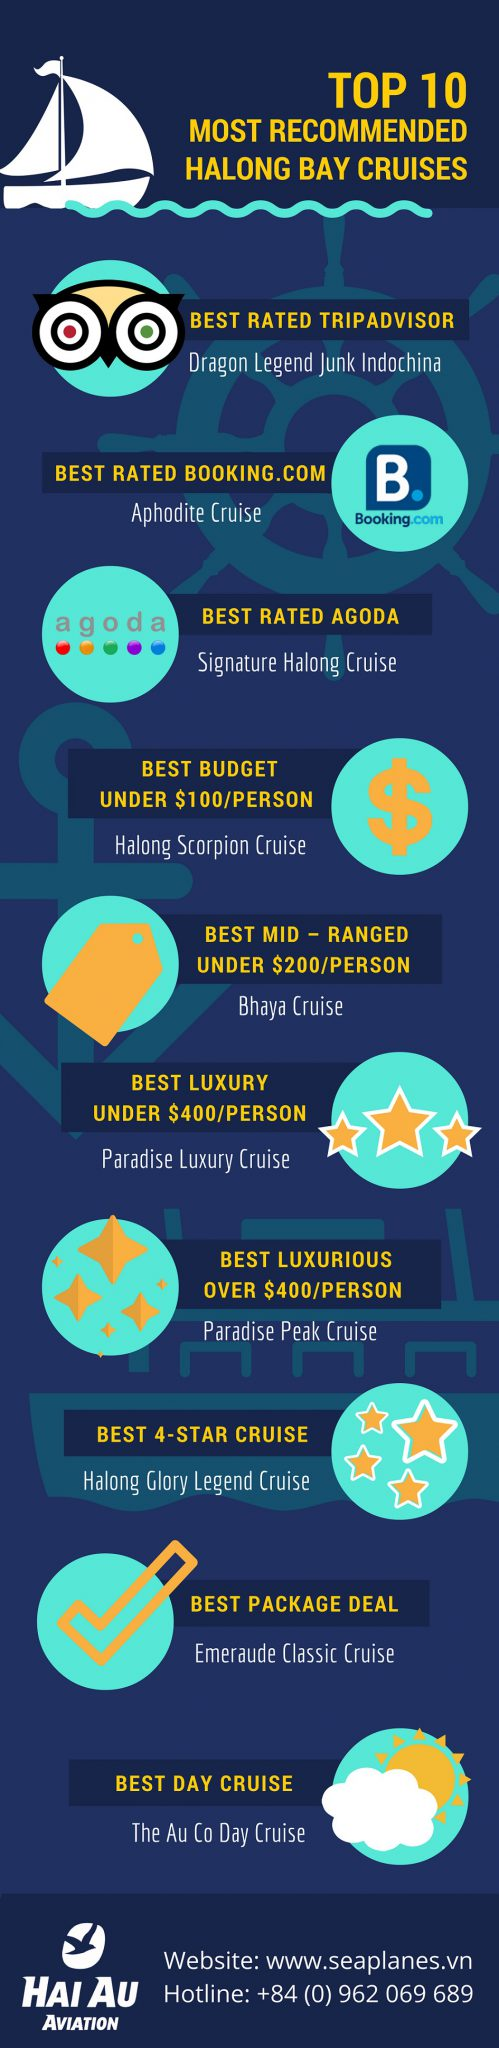 top_cruises_infographic recommended Halong Bay cruises